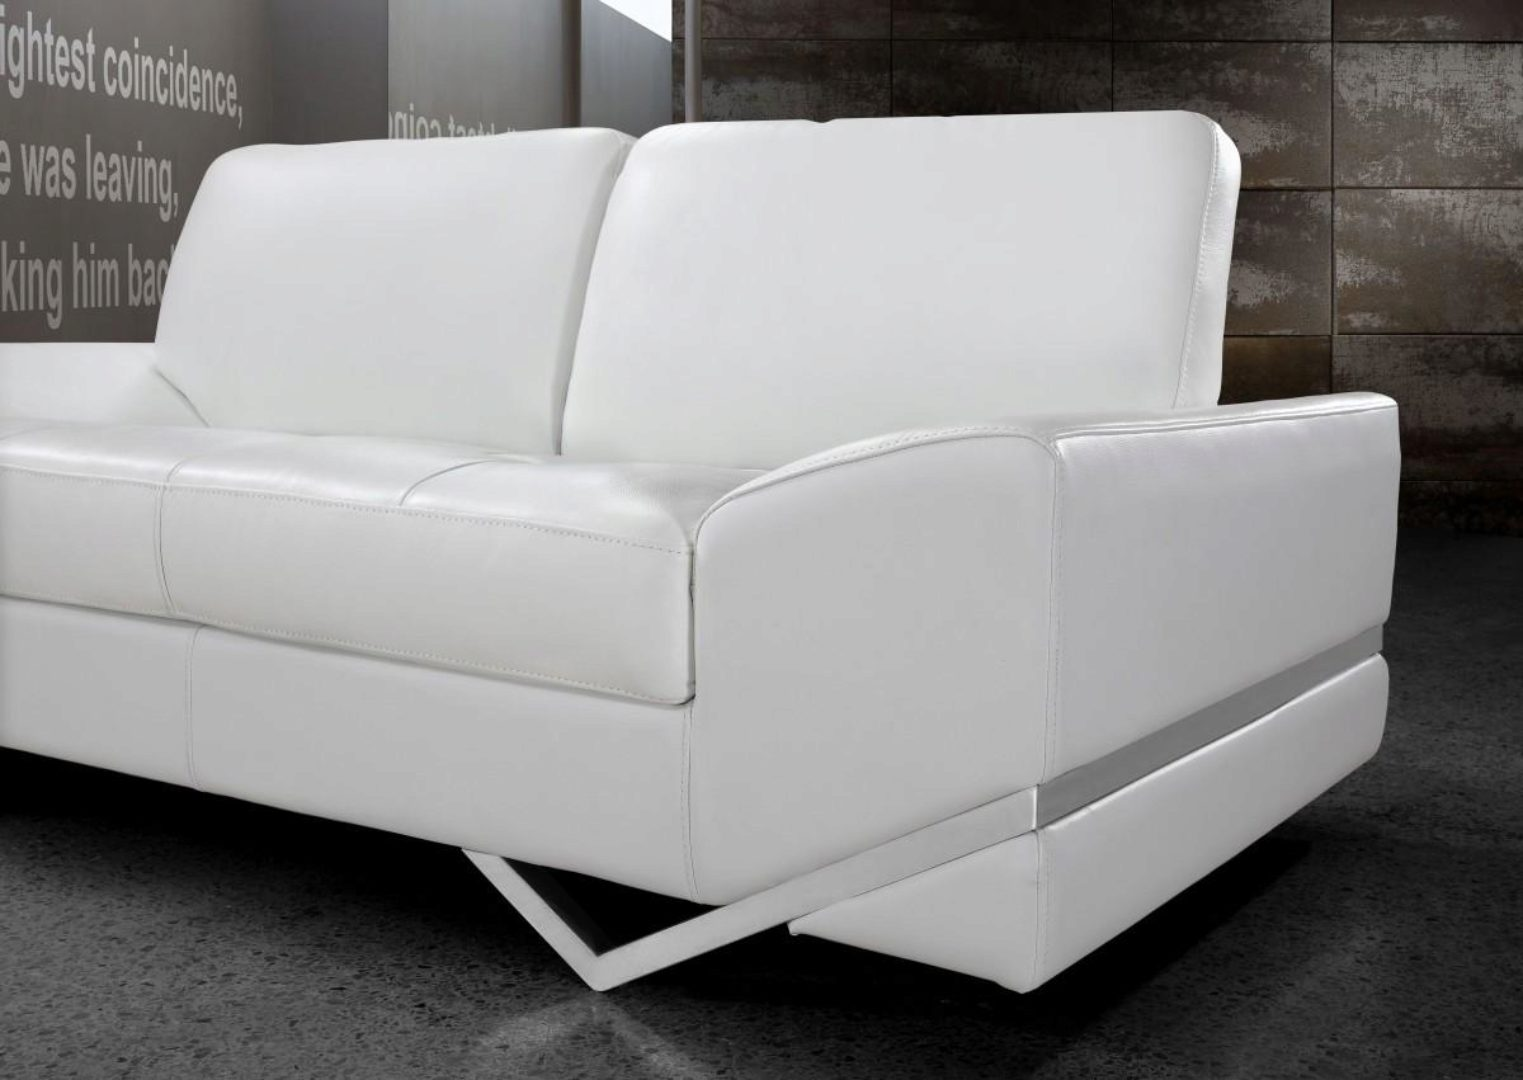 Picture of: Soflex San Francisco Modern White Leather Sofa Living Room Set 3pcs Contemporary Soflex San Francisco Sofa Set 3